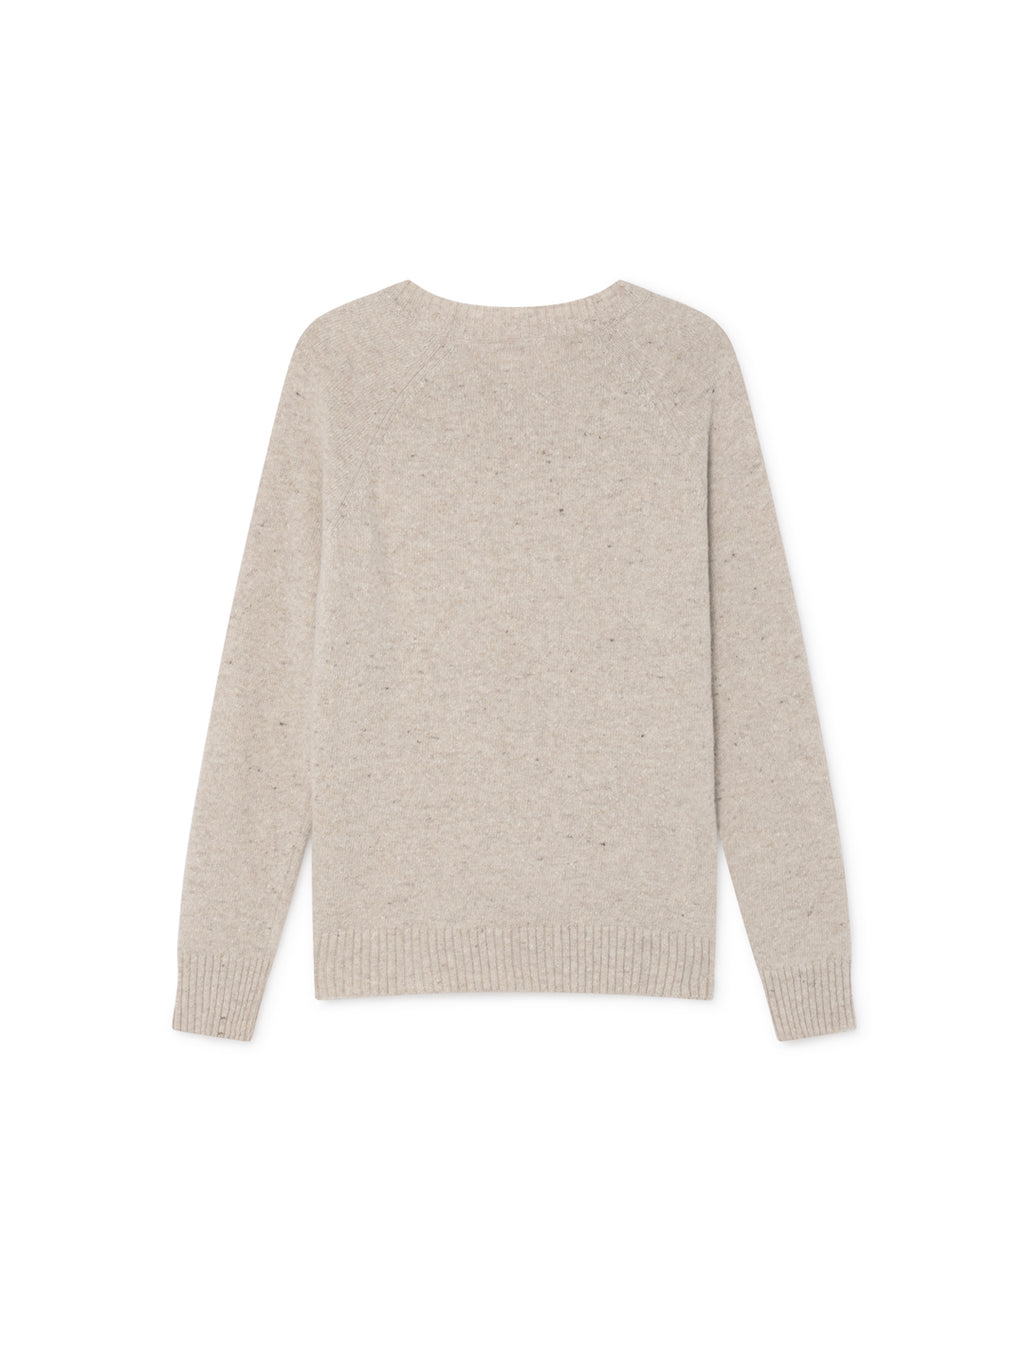 TWOTHIRDS Womens Knit: Agpat - Beige back